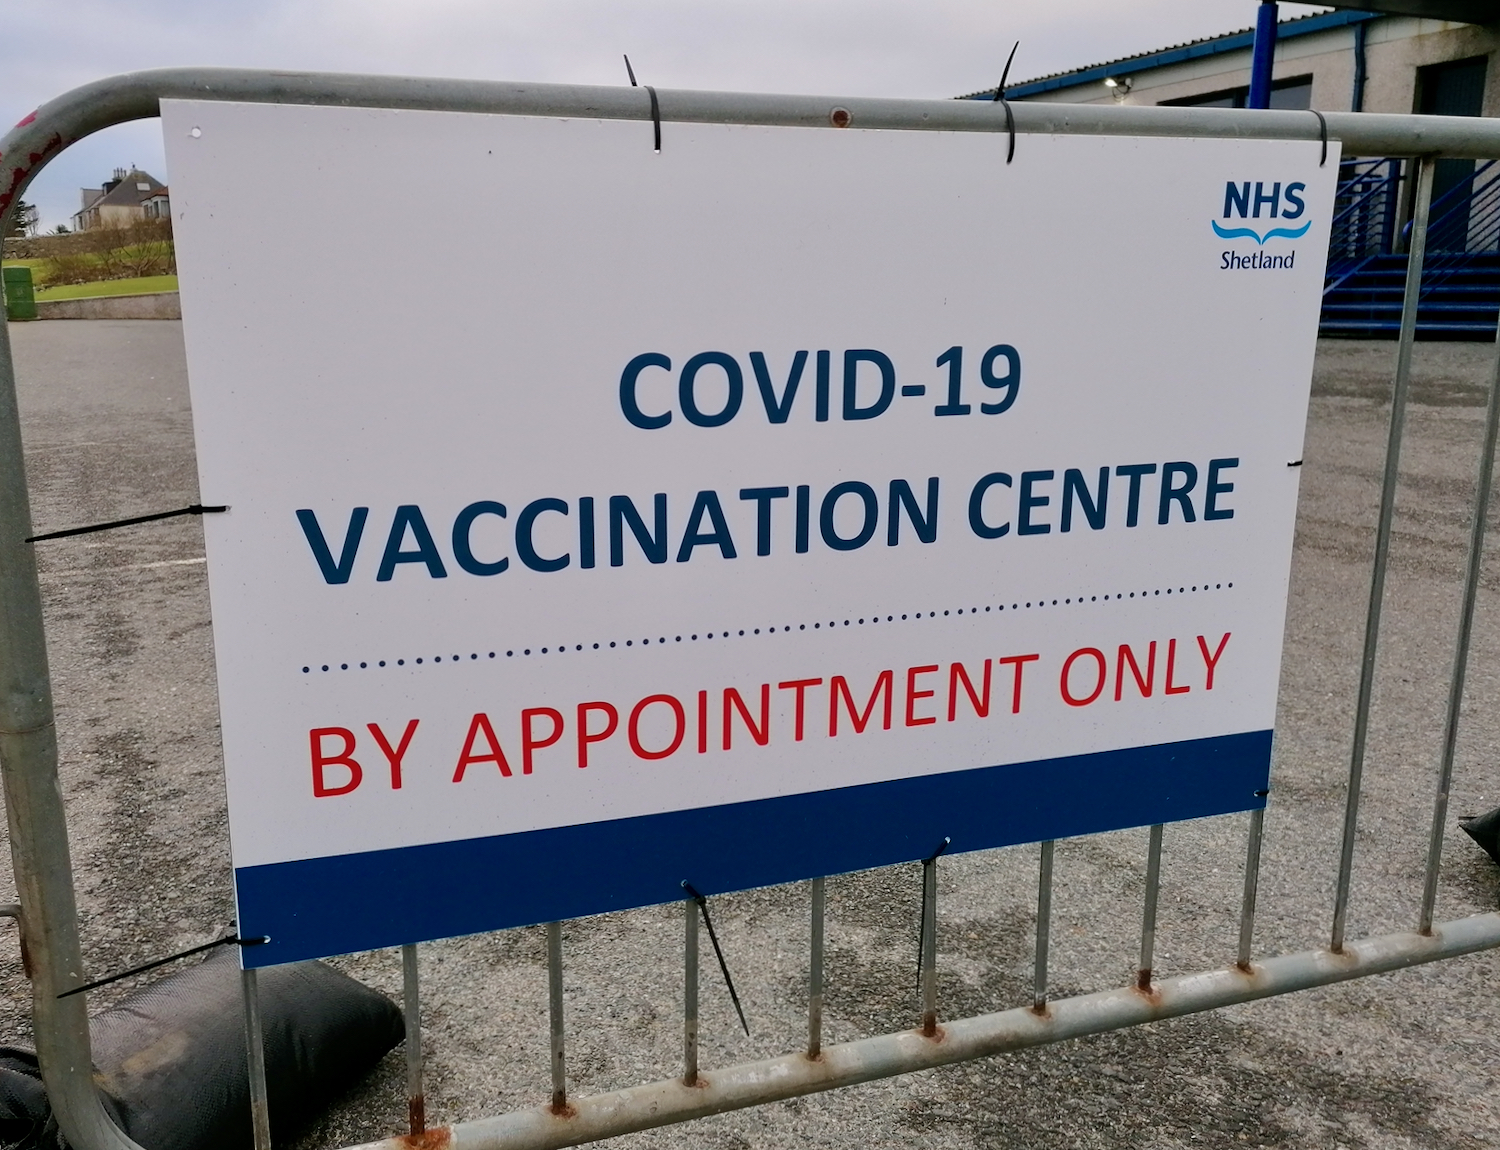 First Covid vaccine dose for 'nearly everyone' by mid-May, health board expects